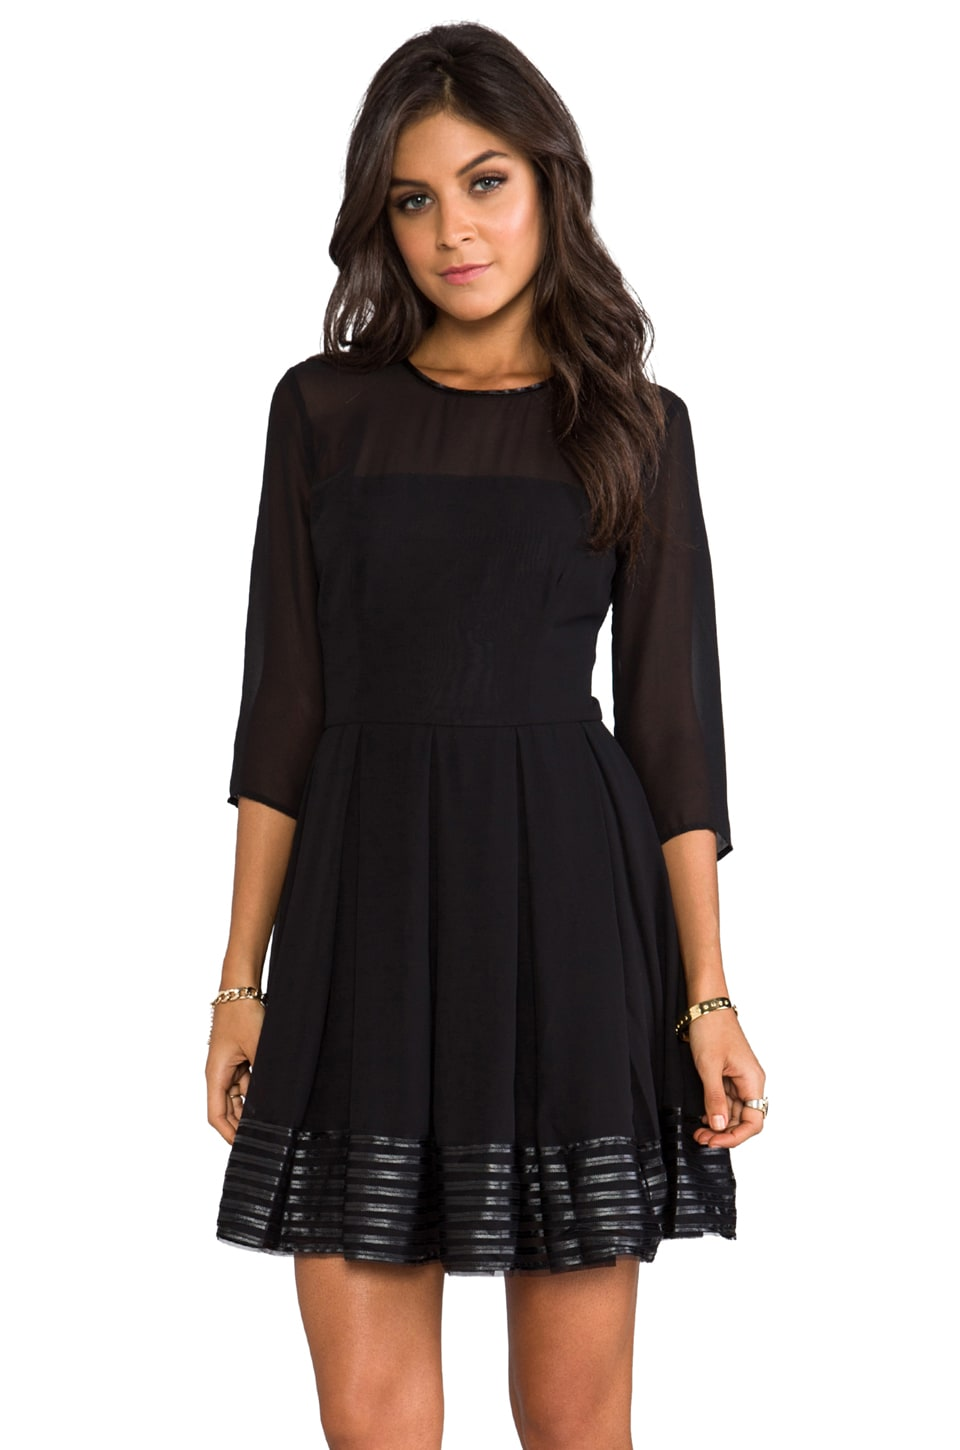 BB Dakota India Chiffon and Mesh Long Sleeve Dress in Black